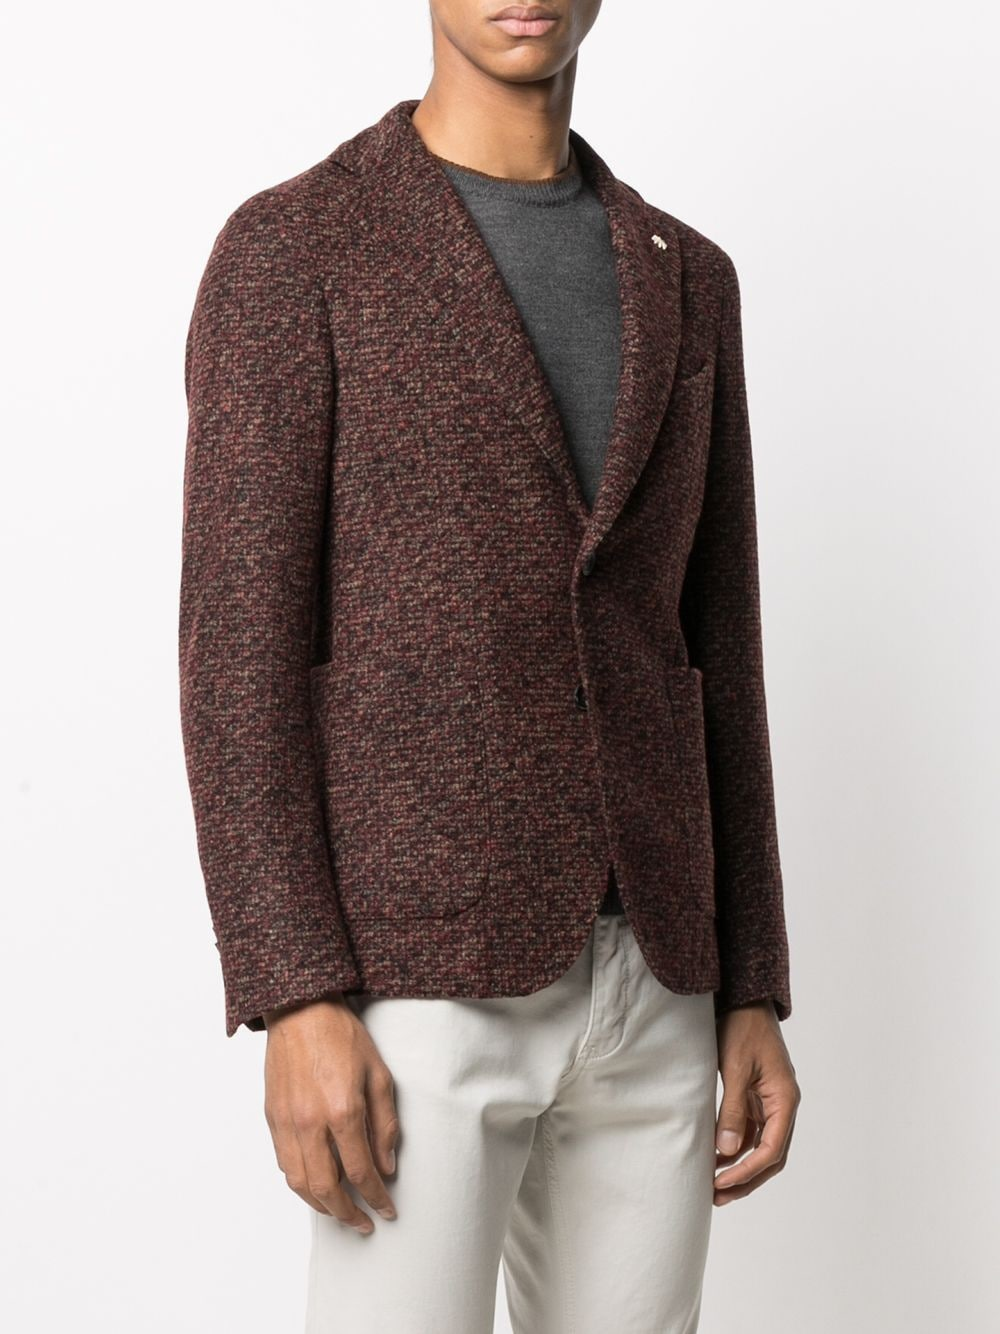 brown single-breasted blazer featuring notched lapels MANUEL RITZ |  | 2932G2728M-20370219